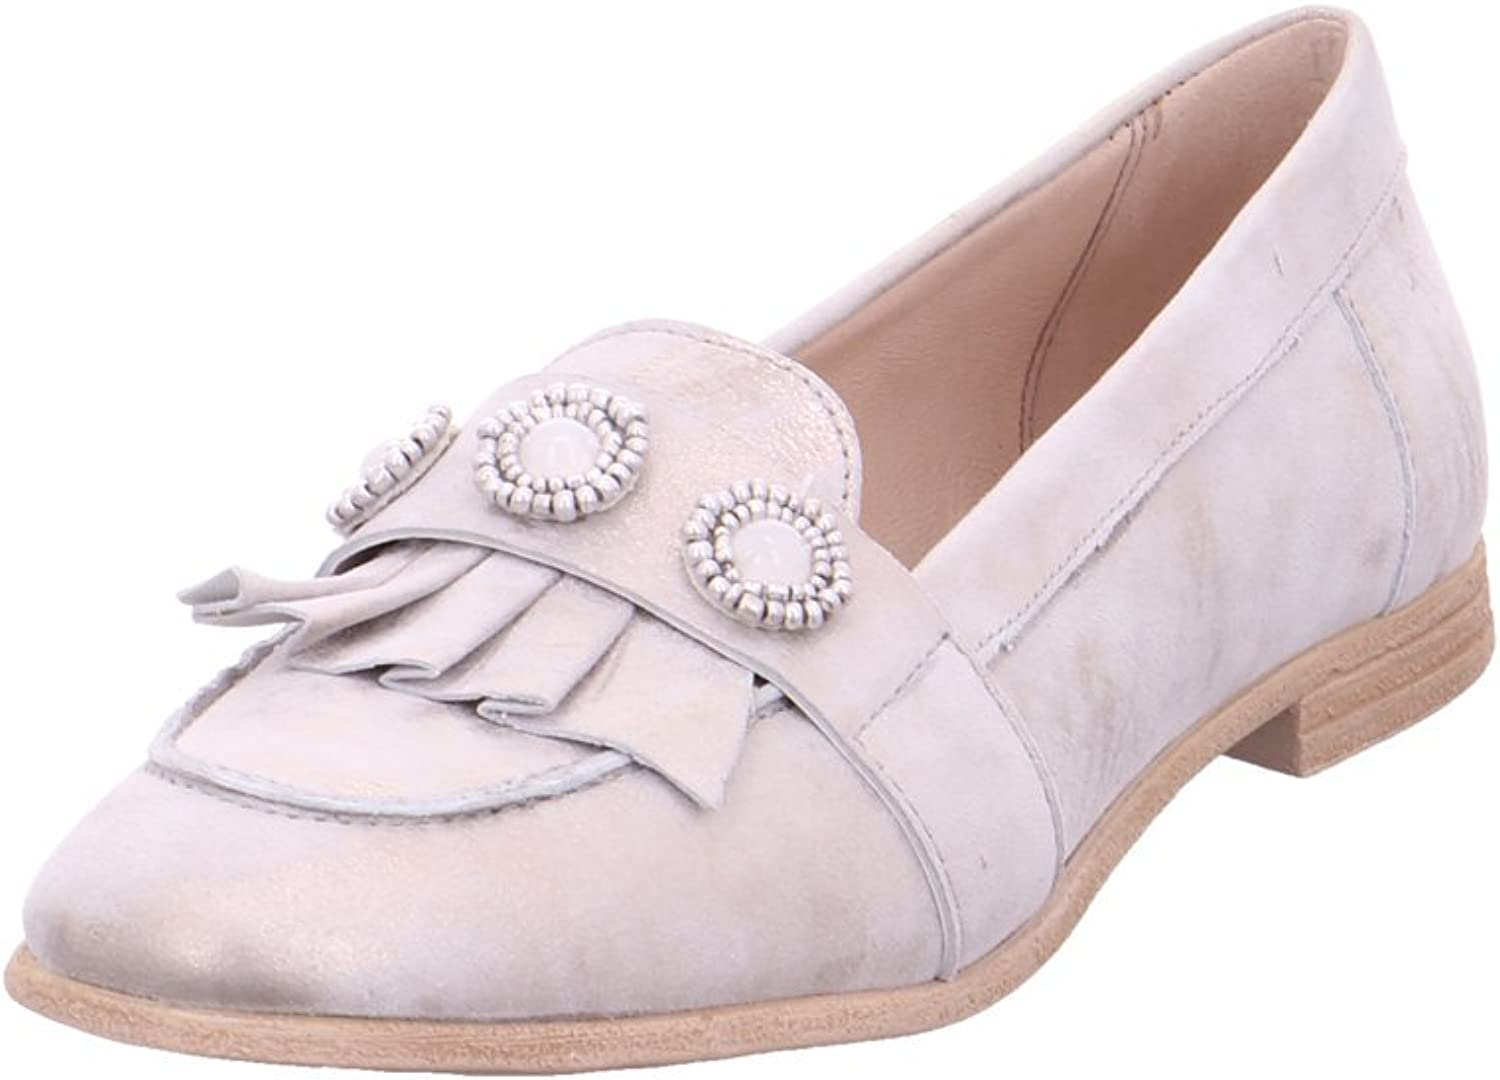 Mjus Damen Slipper 716114-0101-6371 beige 445166